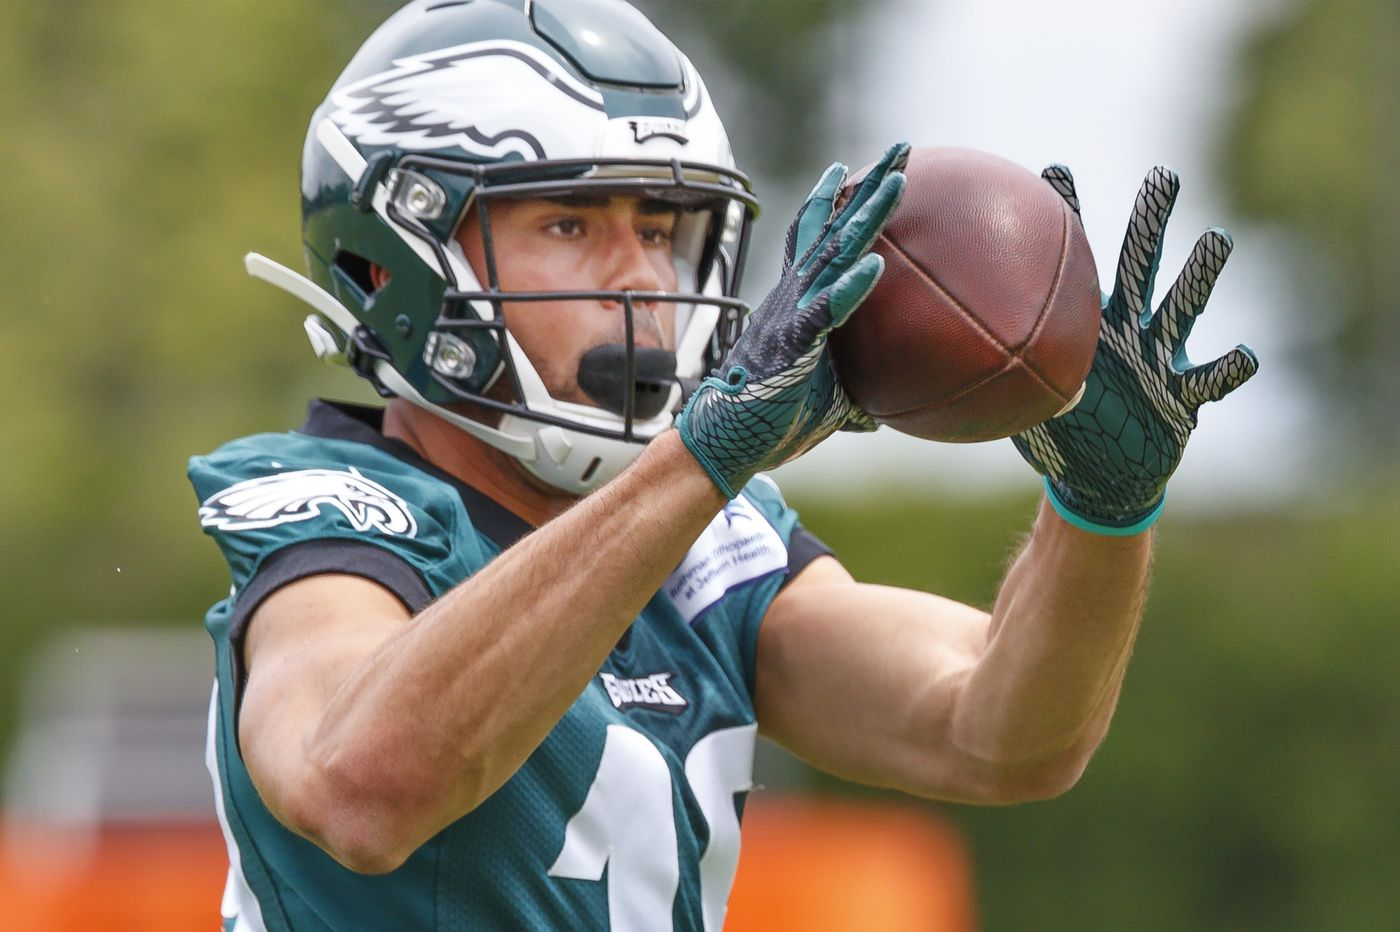 J.J. Arcega-Whiteside is showing red-zone talents the Eagles were looking for when they drafted him